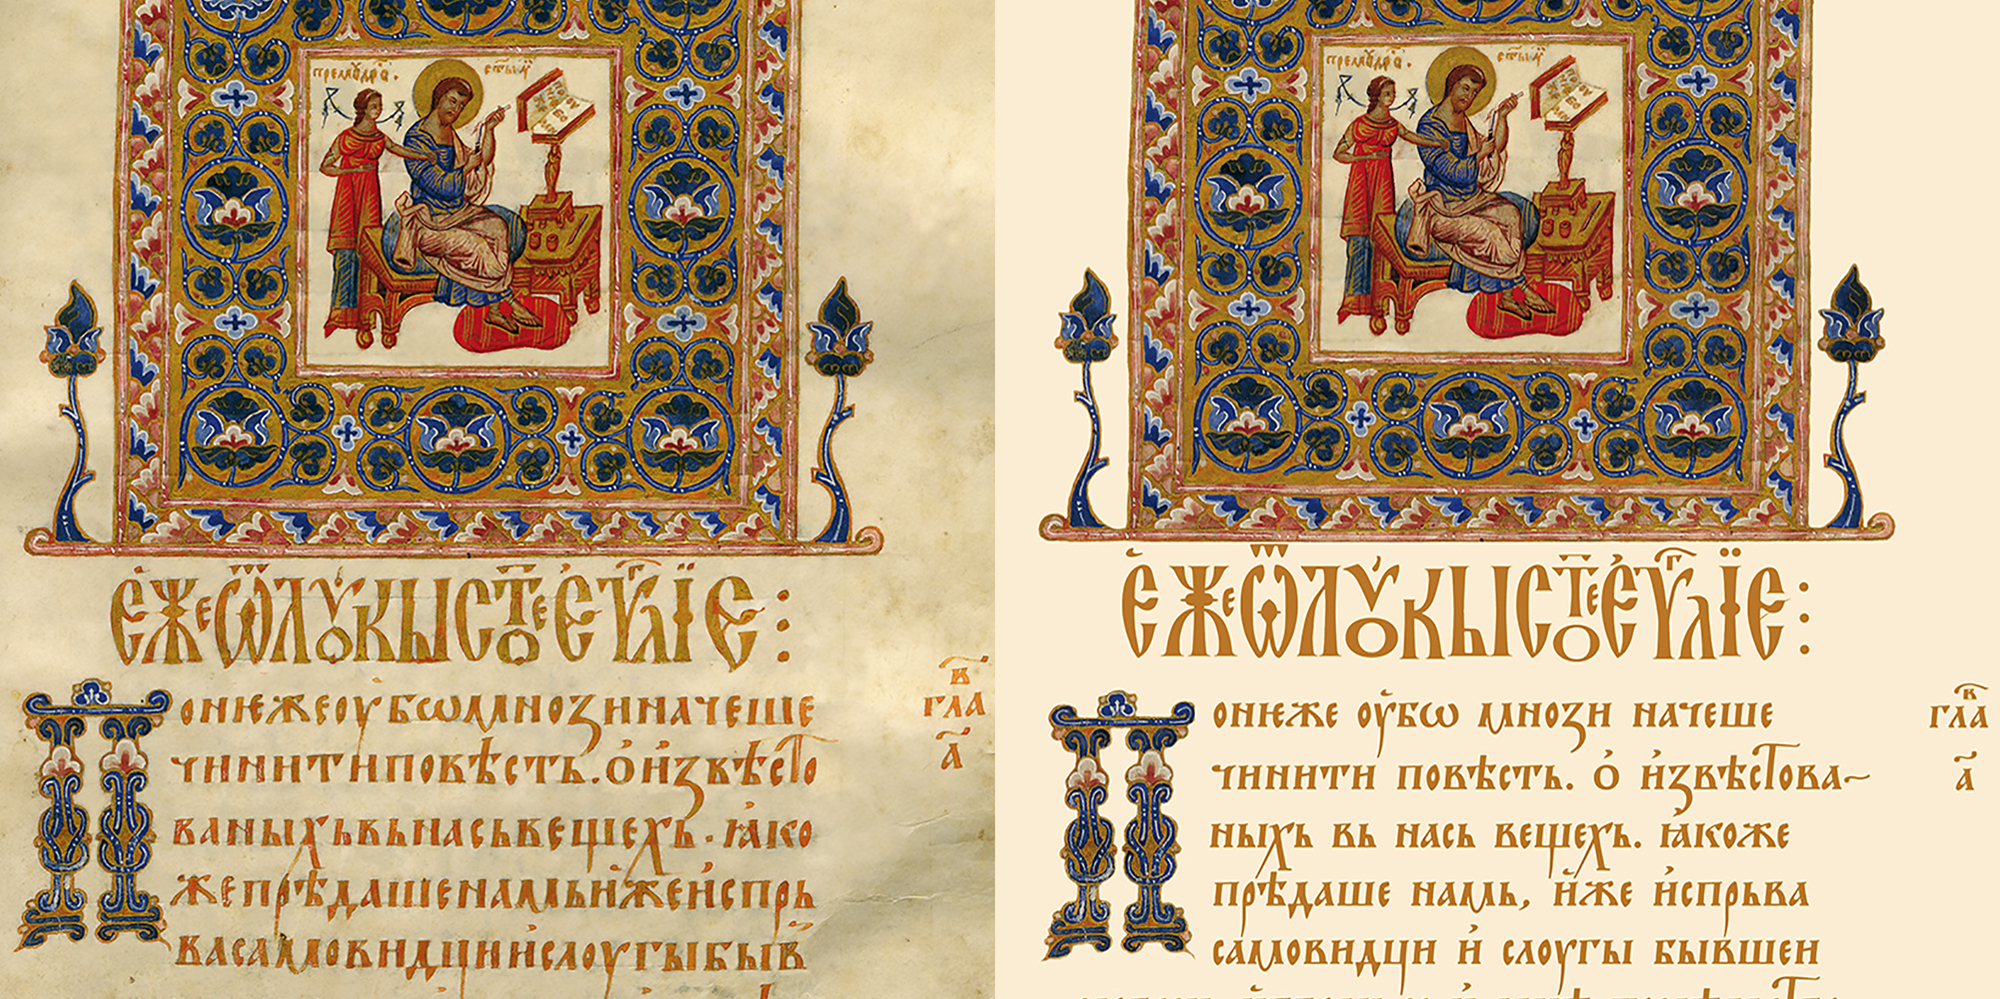 Left: A fourteenth century original manuscript of the Gospel of Luke, Monastery of Chilandar, Mount Athos. Right: Zorans digitization of the calligraphy seen in the manuscript